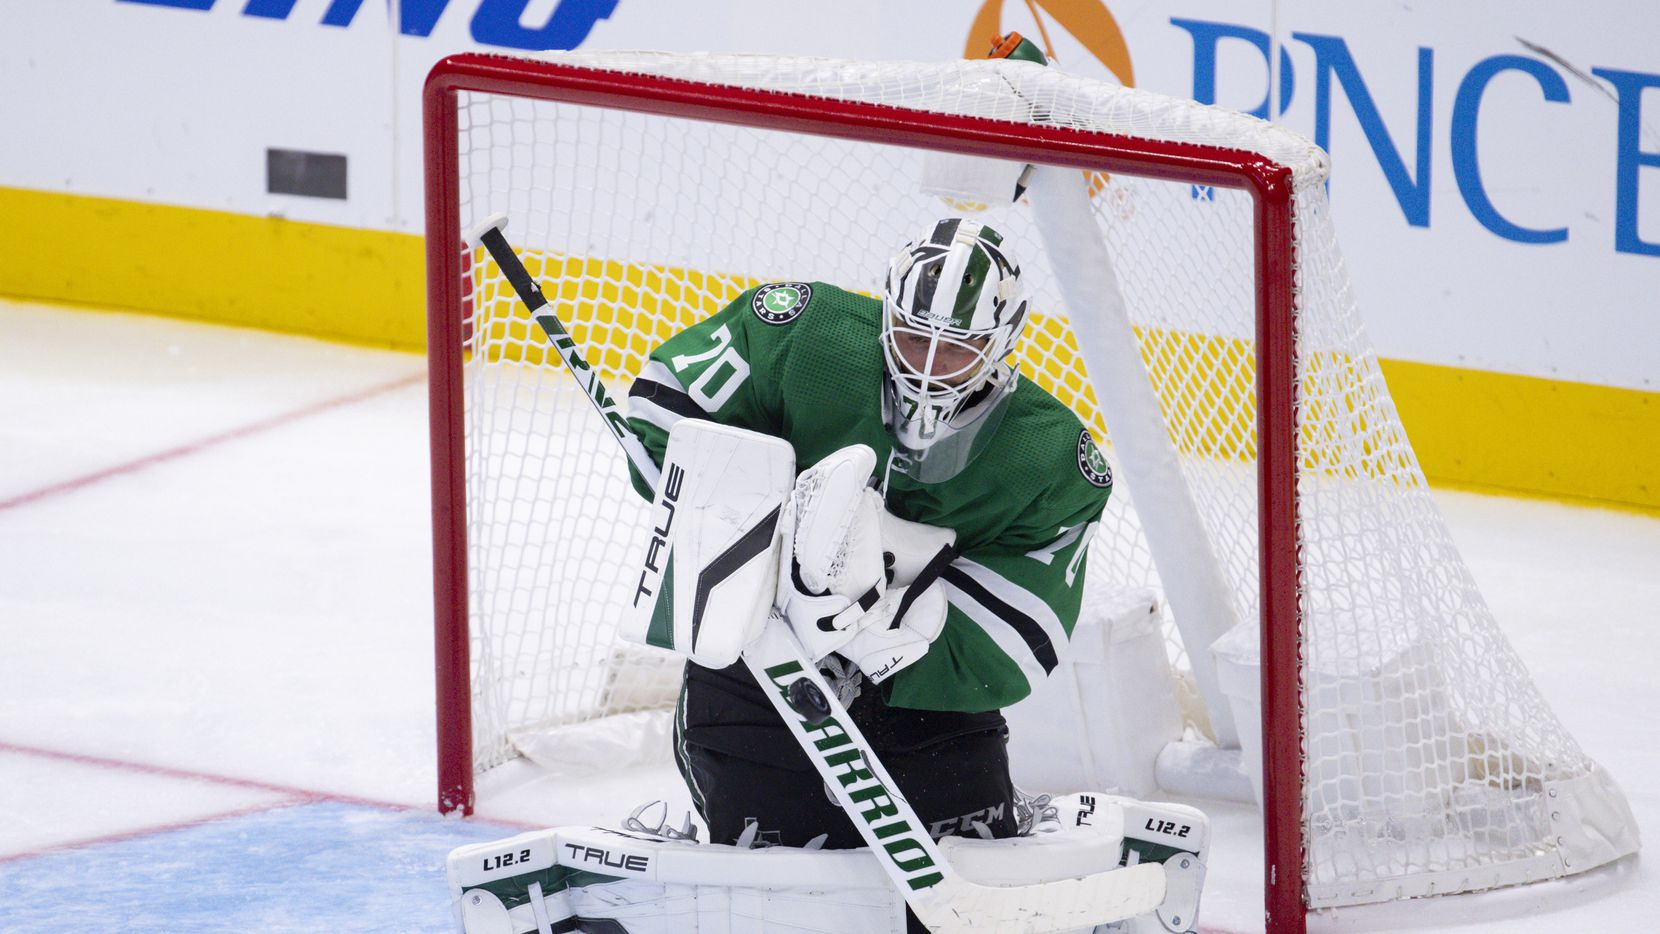 Dallas Stars goaltender Braden Holtby (70) stops a St. Louis Blues goal during the third period of a Dallas Stars preseason game against St. Louis Blues on Tuesday, Oct. 5, 2021, at American Airlines Center in Dallas.